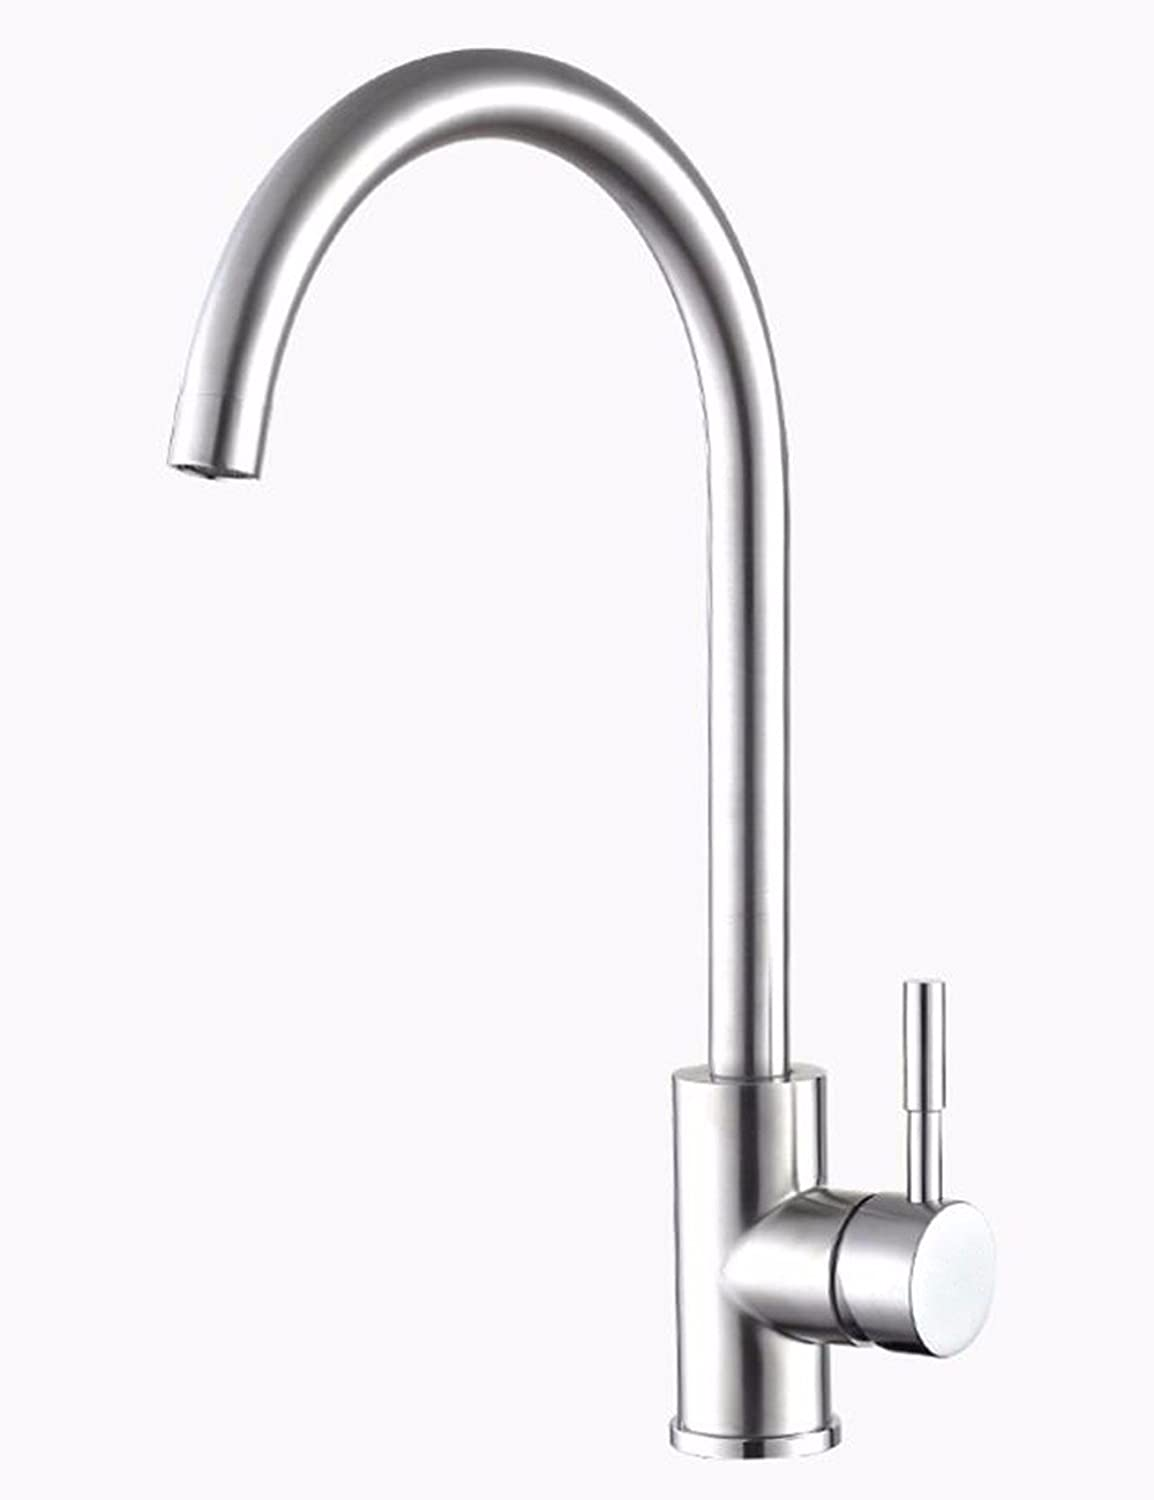 Hlluya Professional Sink Mixer Tap Kitchen Faucet Dish washing basin faucet and cold water faucet 304 stainless steel faucet swivel brushed Faucet